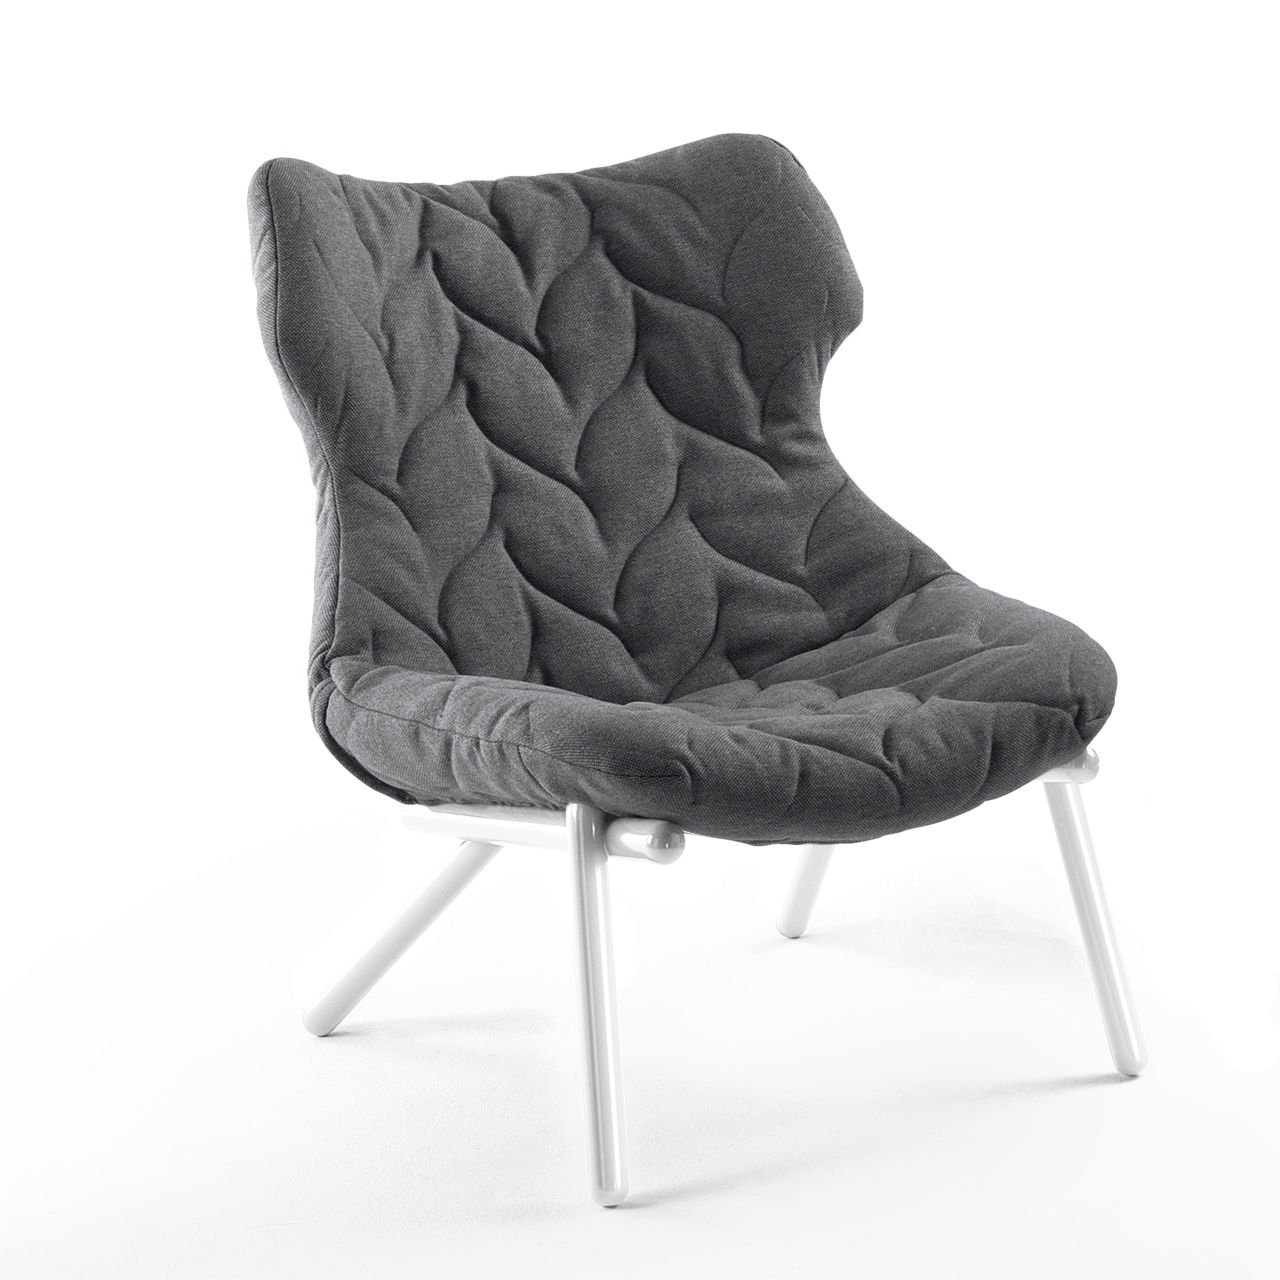 Foliage Chair in Grey by Kartell